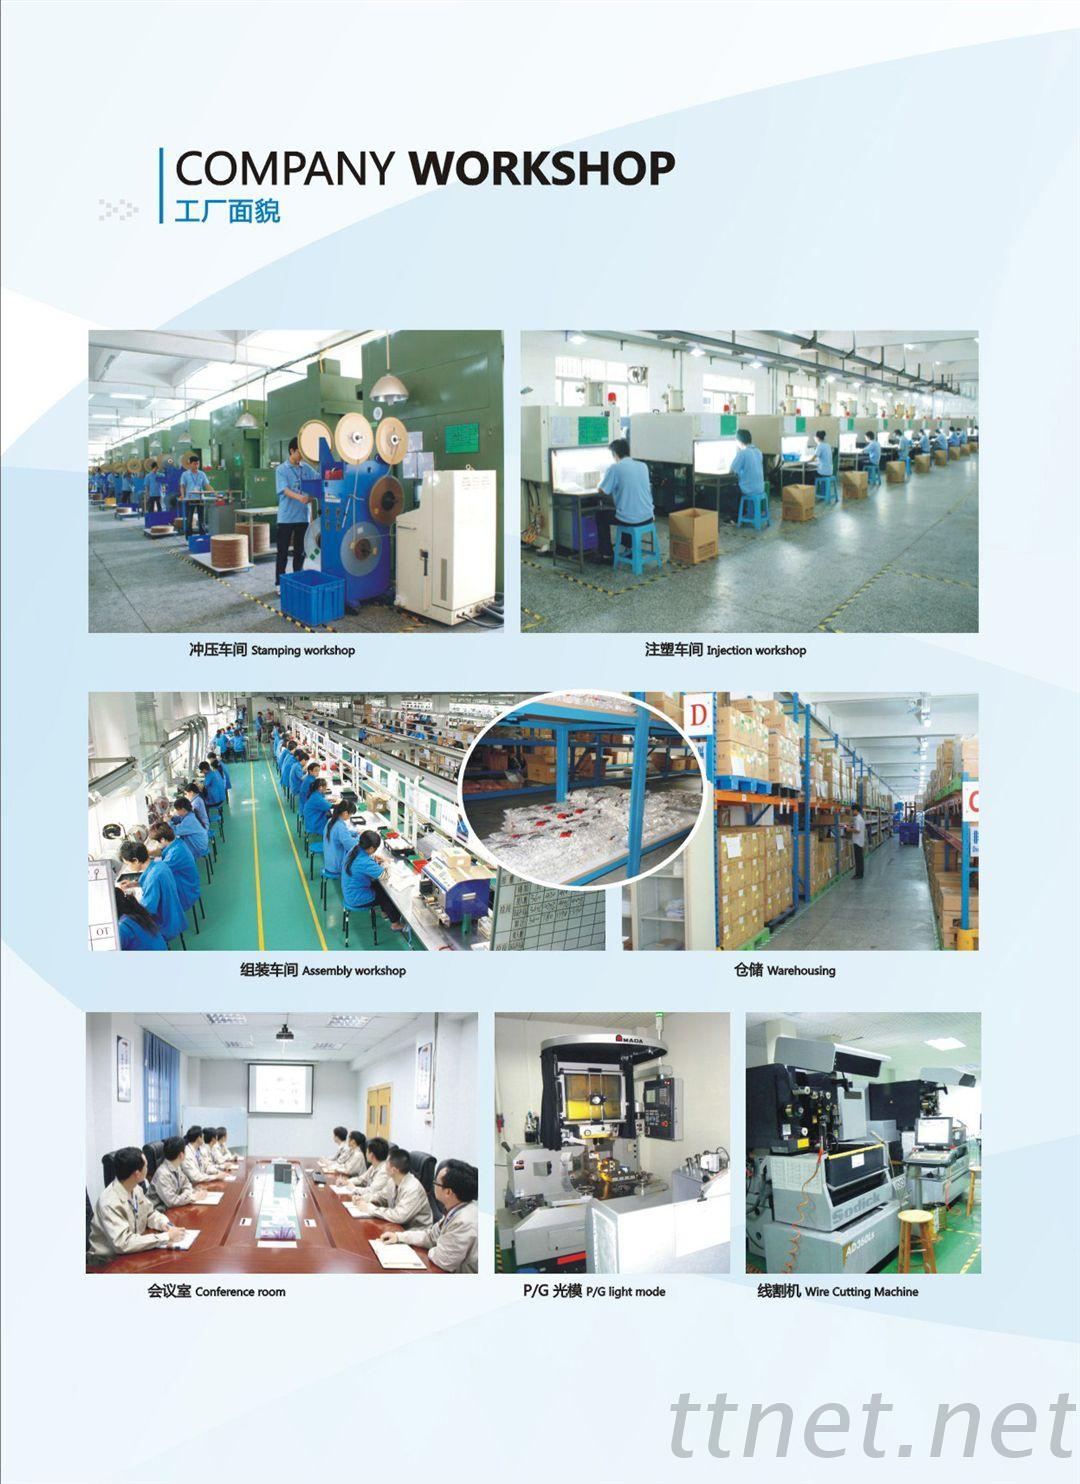 Dongguan NBC Electronic Technology Co., Ltd